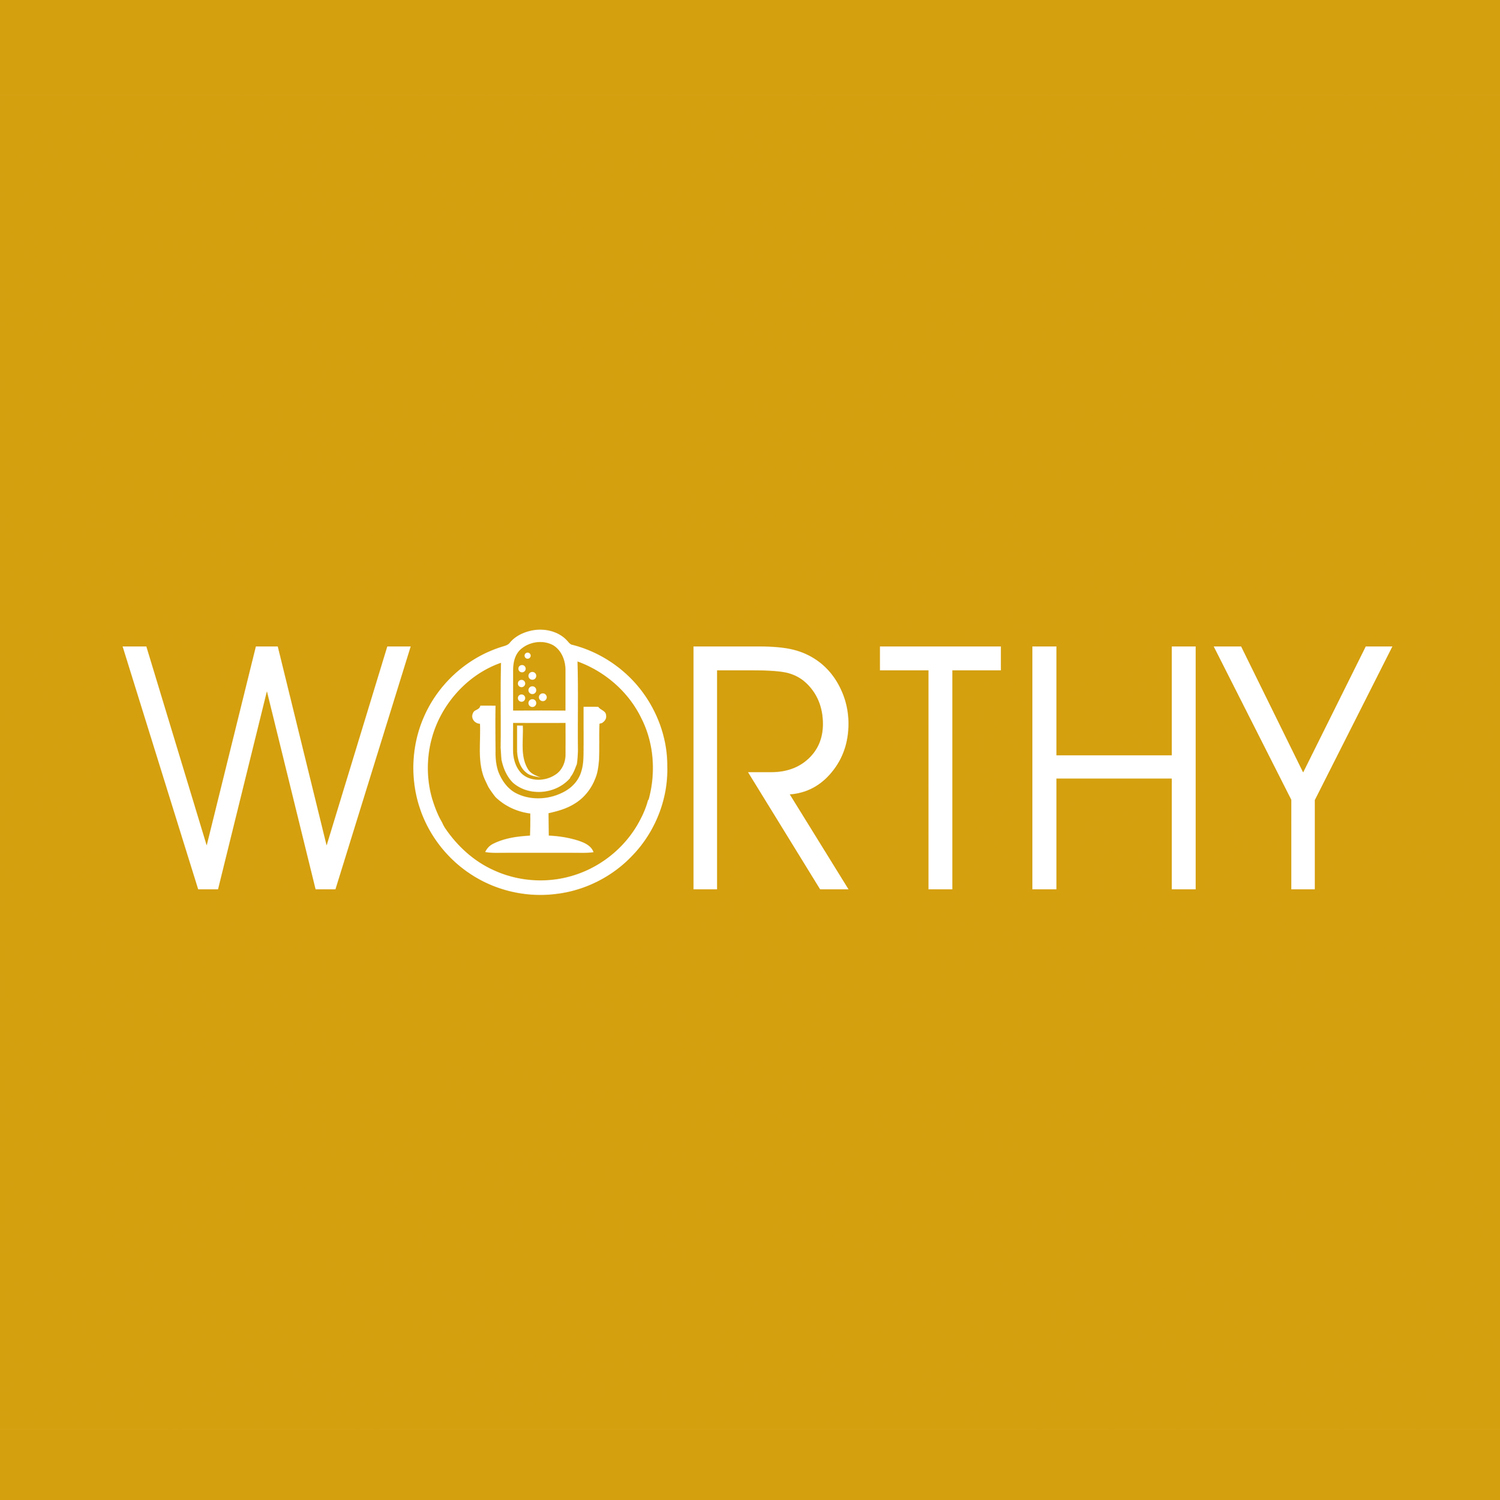 Podcast - The Worthy Podcast